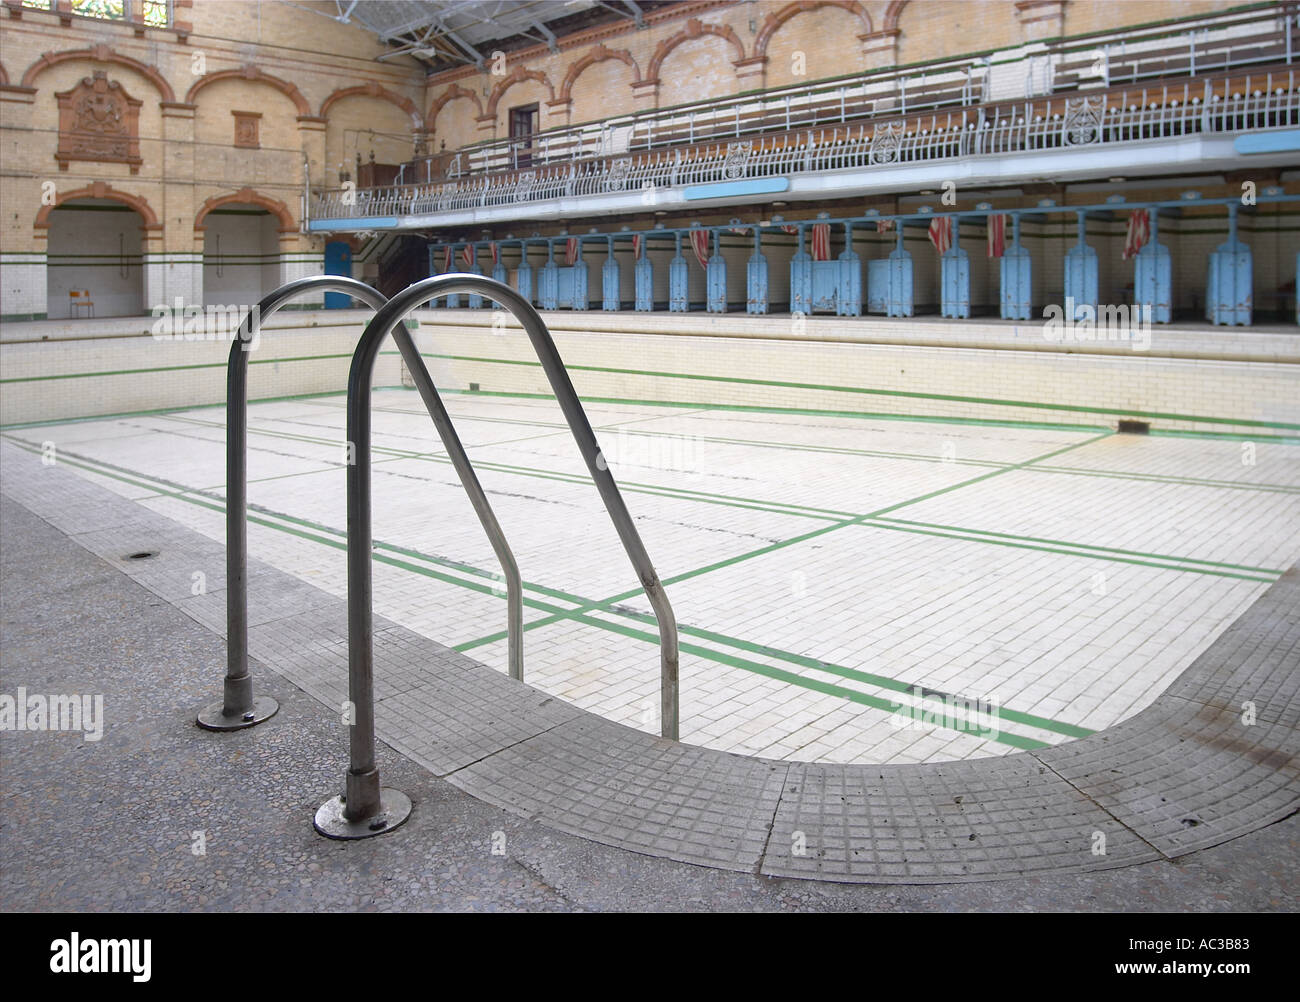 Pool Victoria Baths Rusholme Manchester - Stock Image